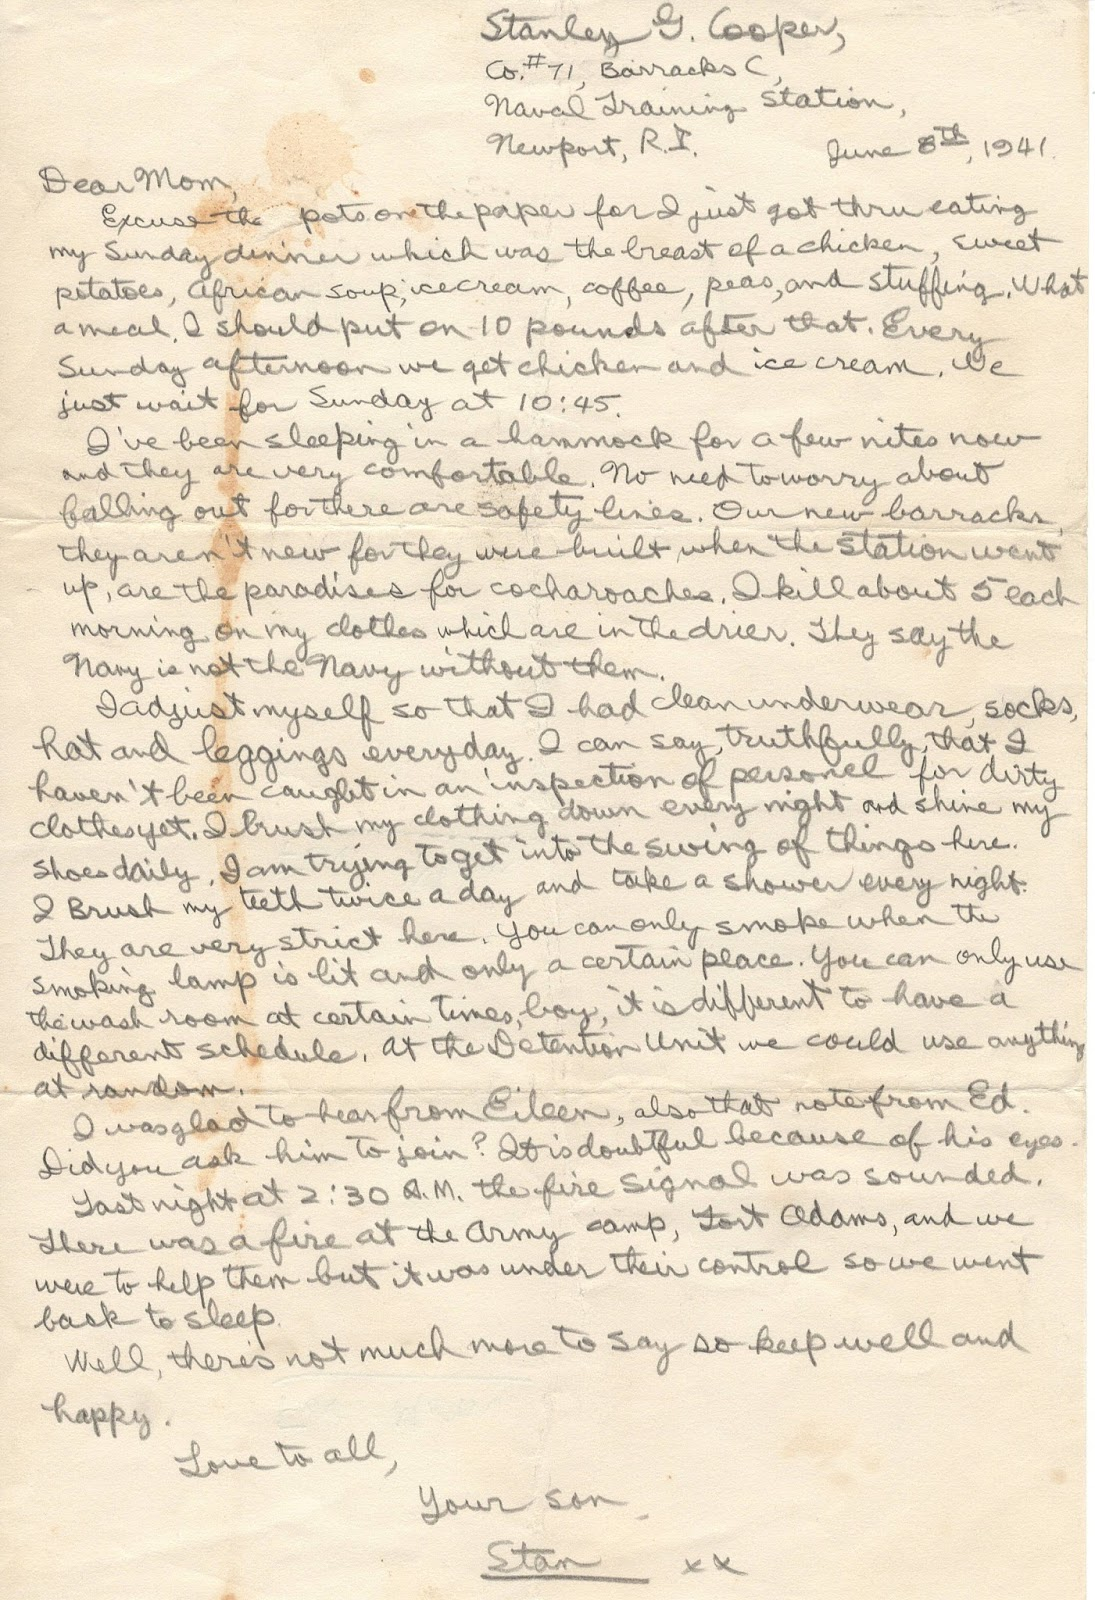 Family Film, Fabric And Food: World War Ii Letters - 8 June 1941